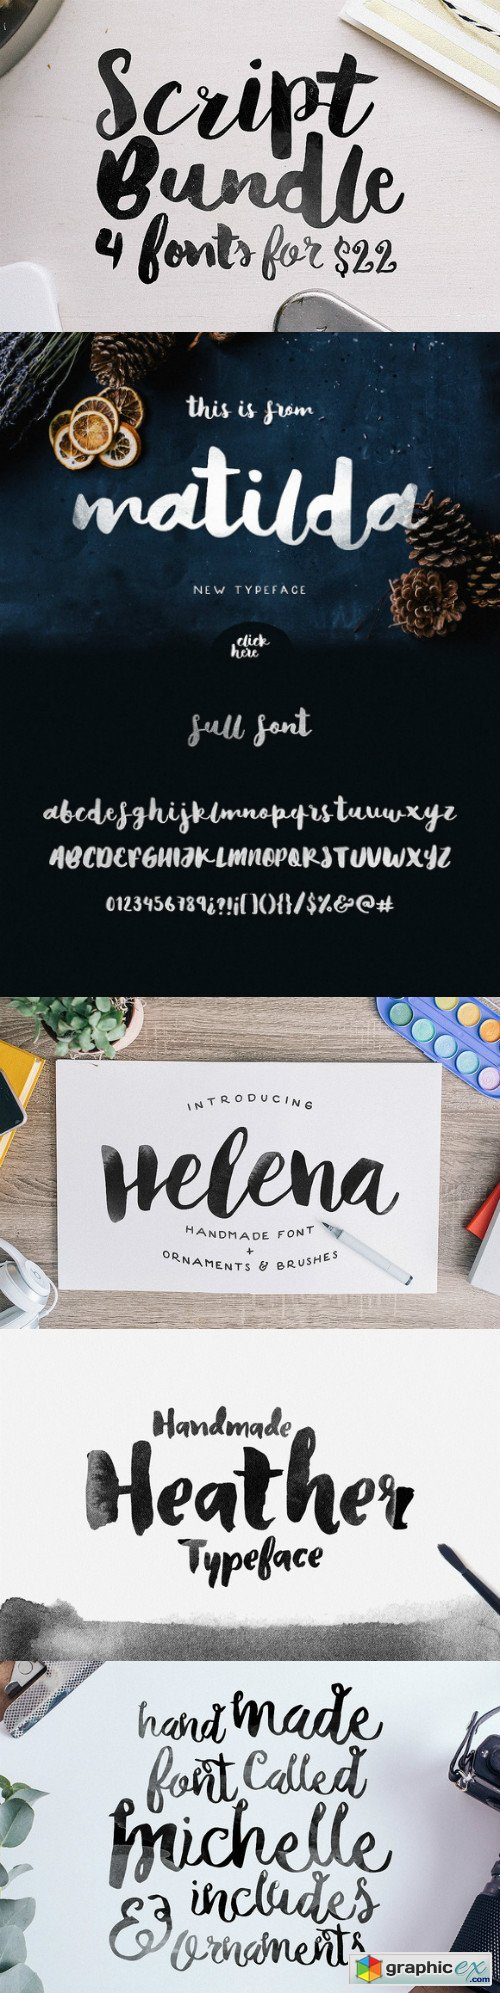 Script Bundle 4 Fonts